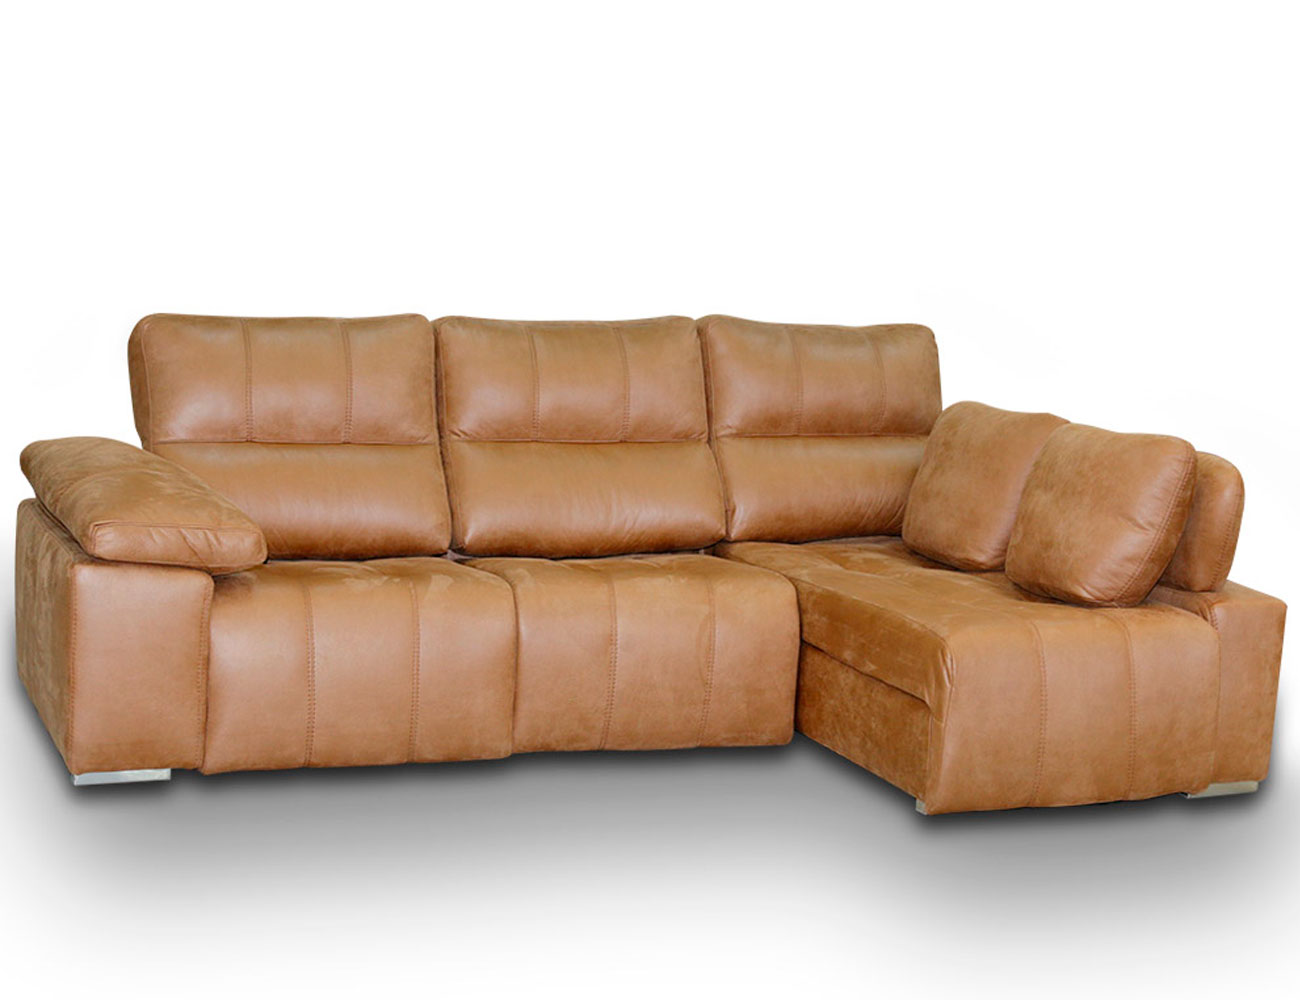 Sofa chaiselongue relax 2 motores anti manchas17